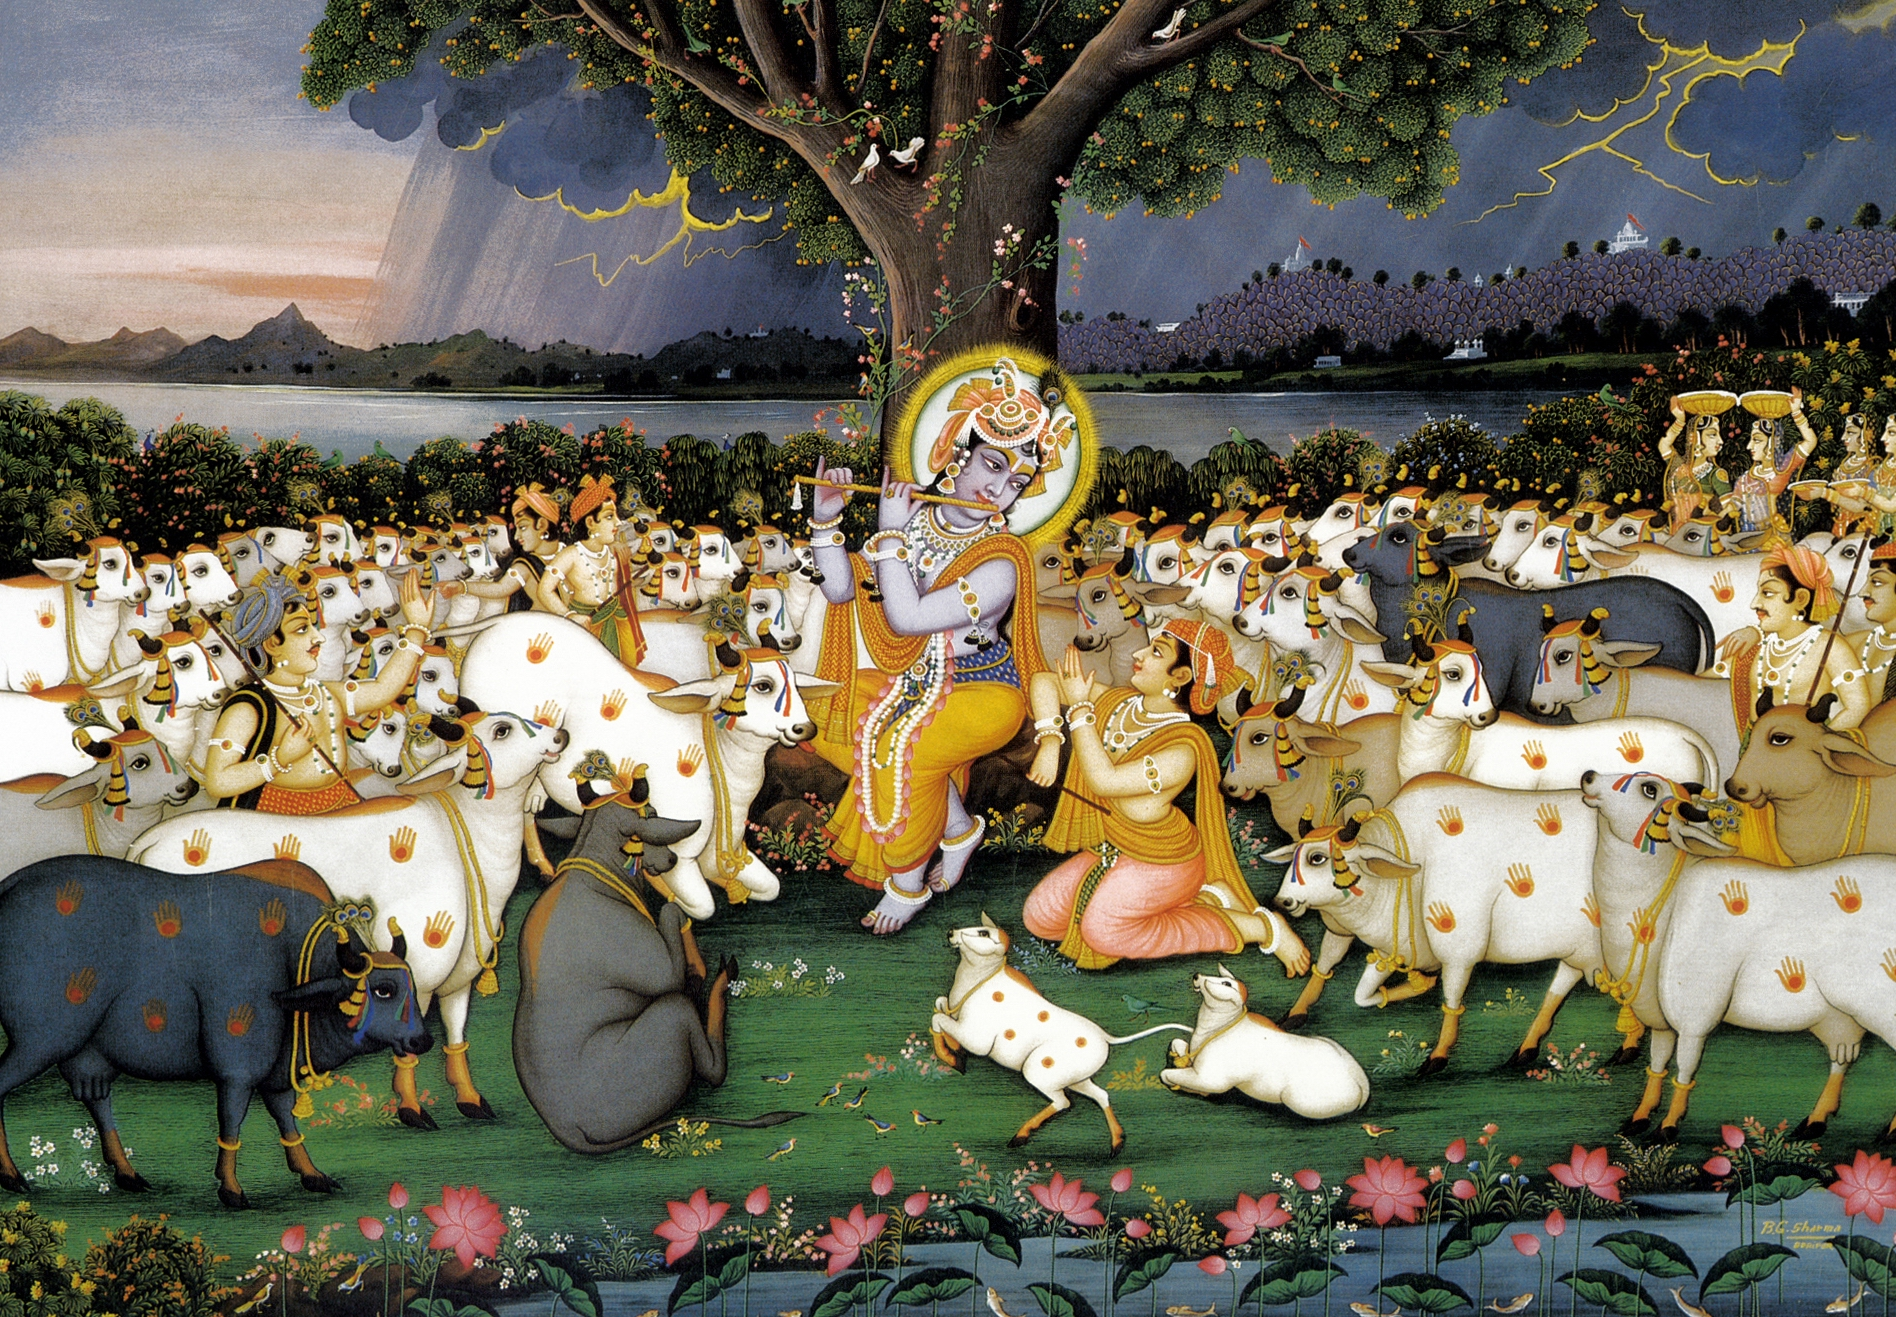 Krishna And Radha 3d Wallpaper The Main Activity Will Be Cow Protection The Hare